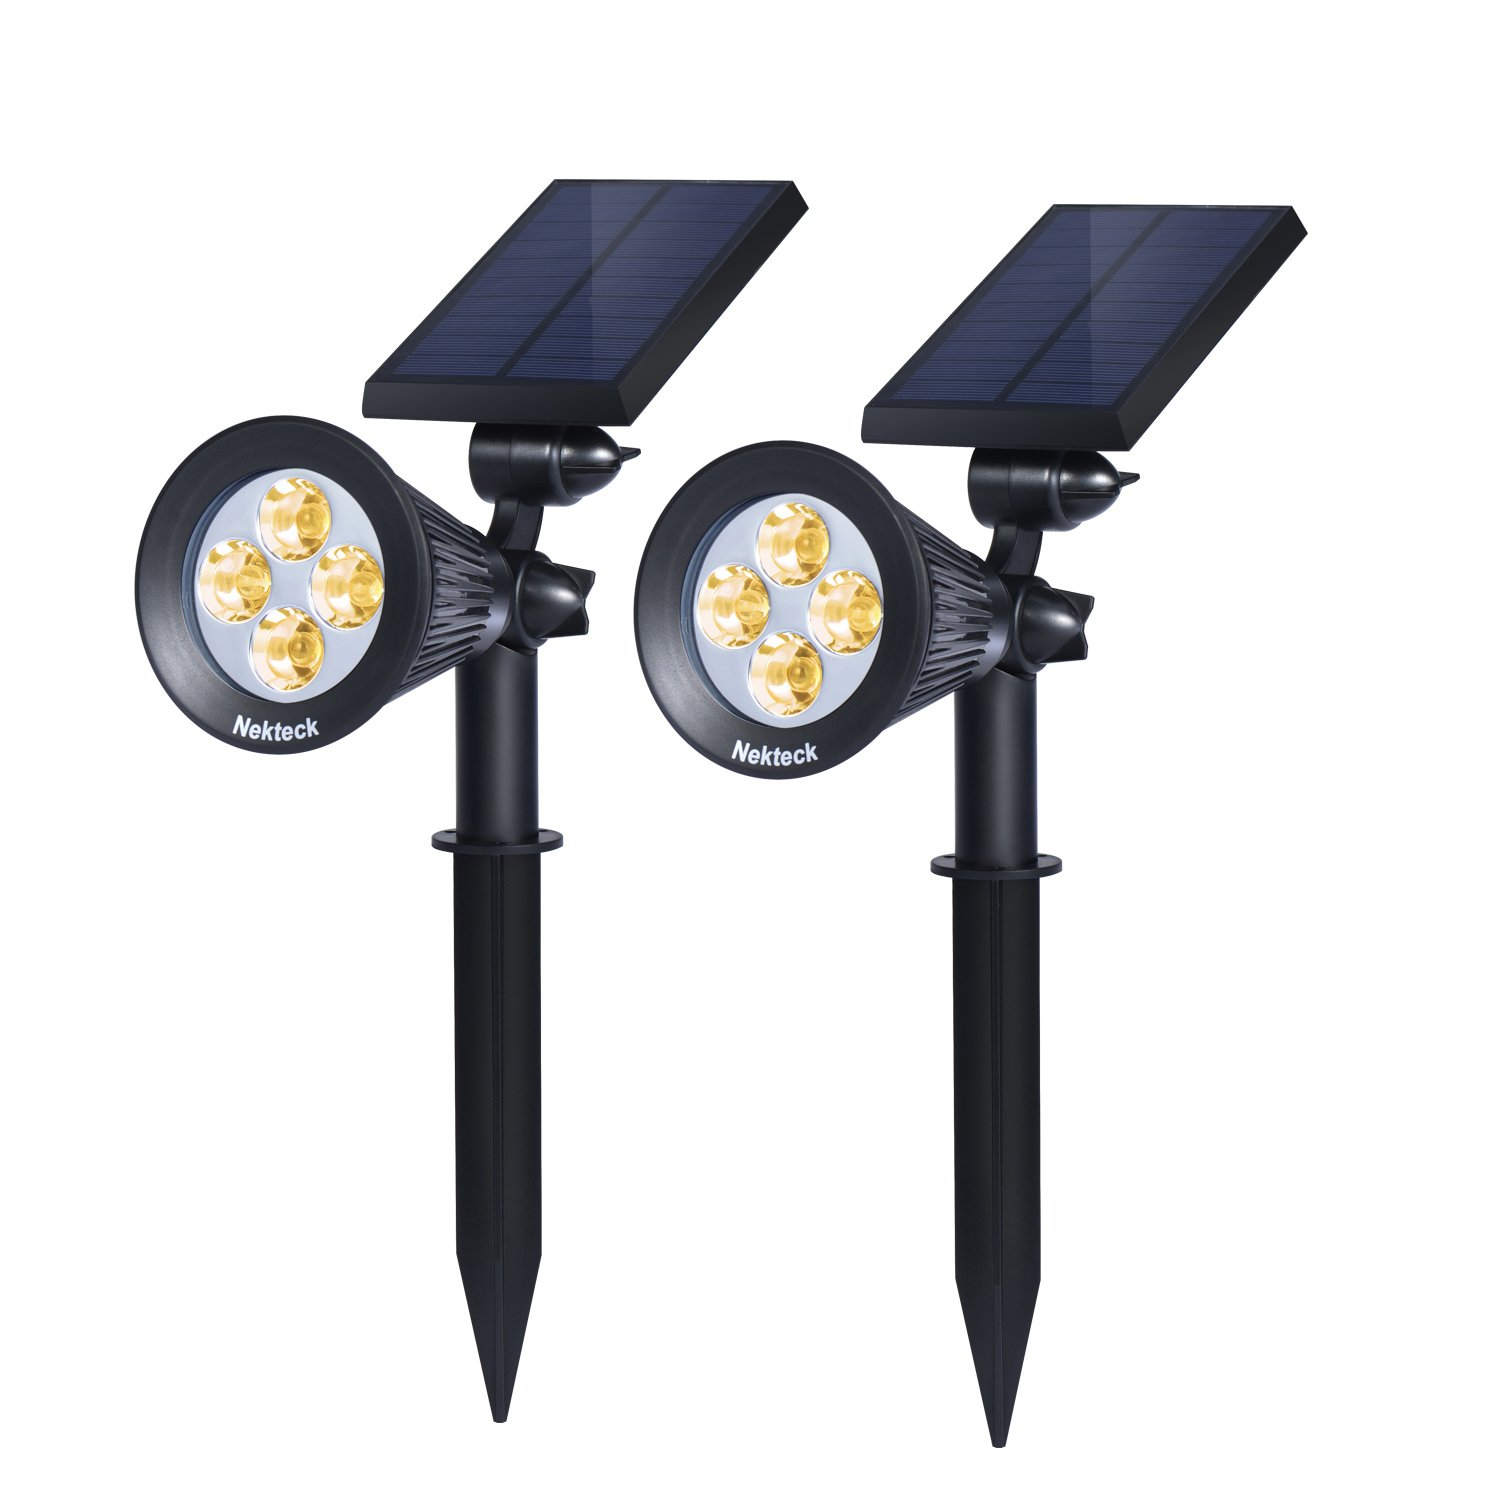 Nekteck Solar Lights Outdoor, 2 in 1 Outdoor Solar Spotlights with Activated Auto On/Off for Pathway, Walkway, Garden, Patio, Driveway, Ground, Yard, Landscaping Decorative (2 Pack,2300K) (Warm white)